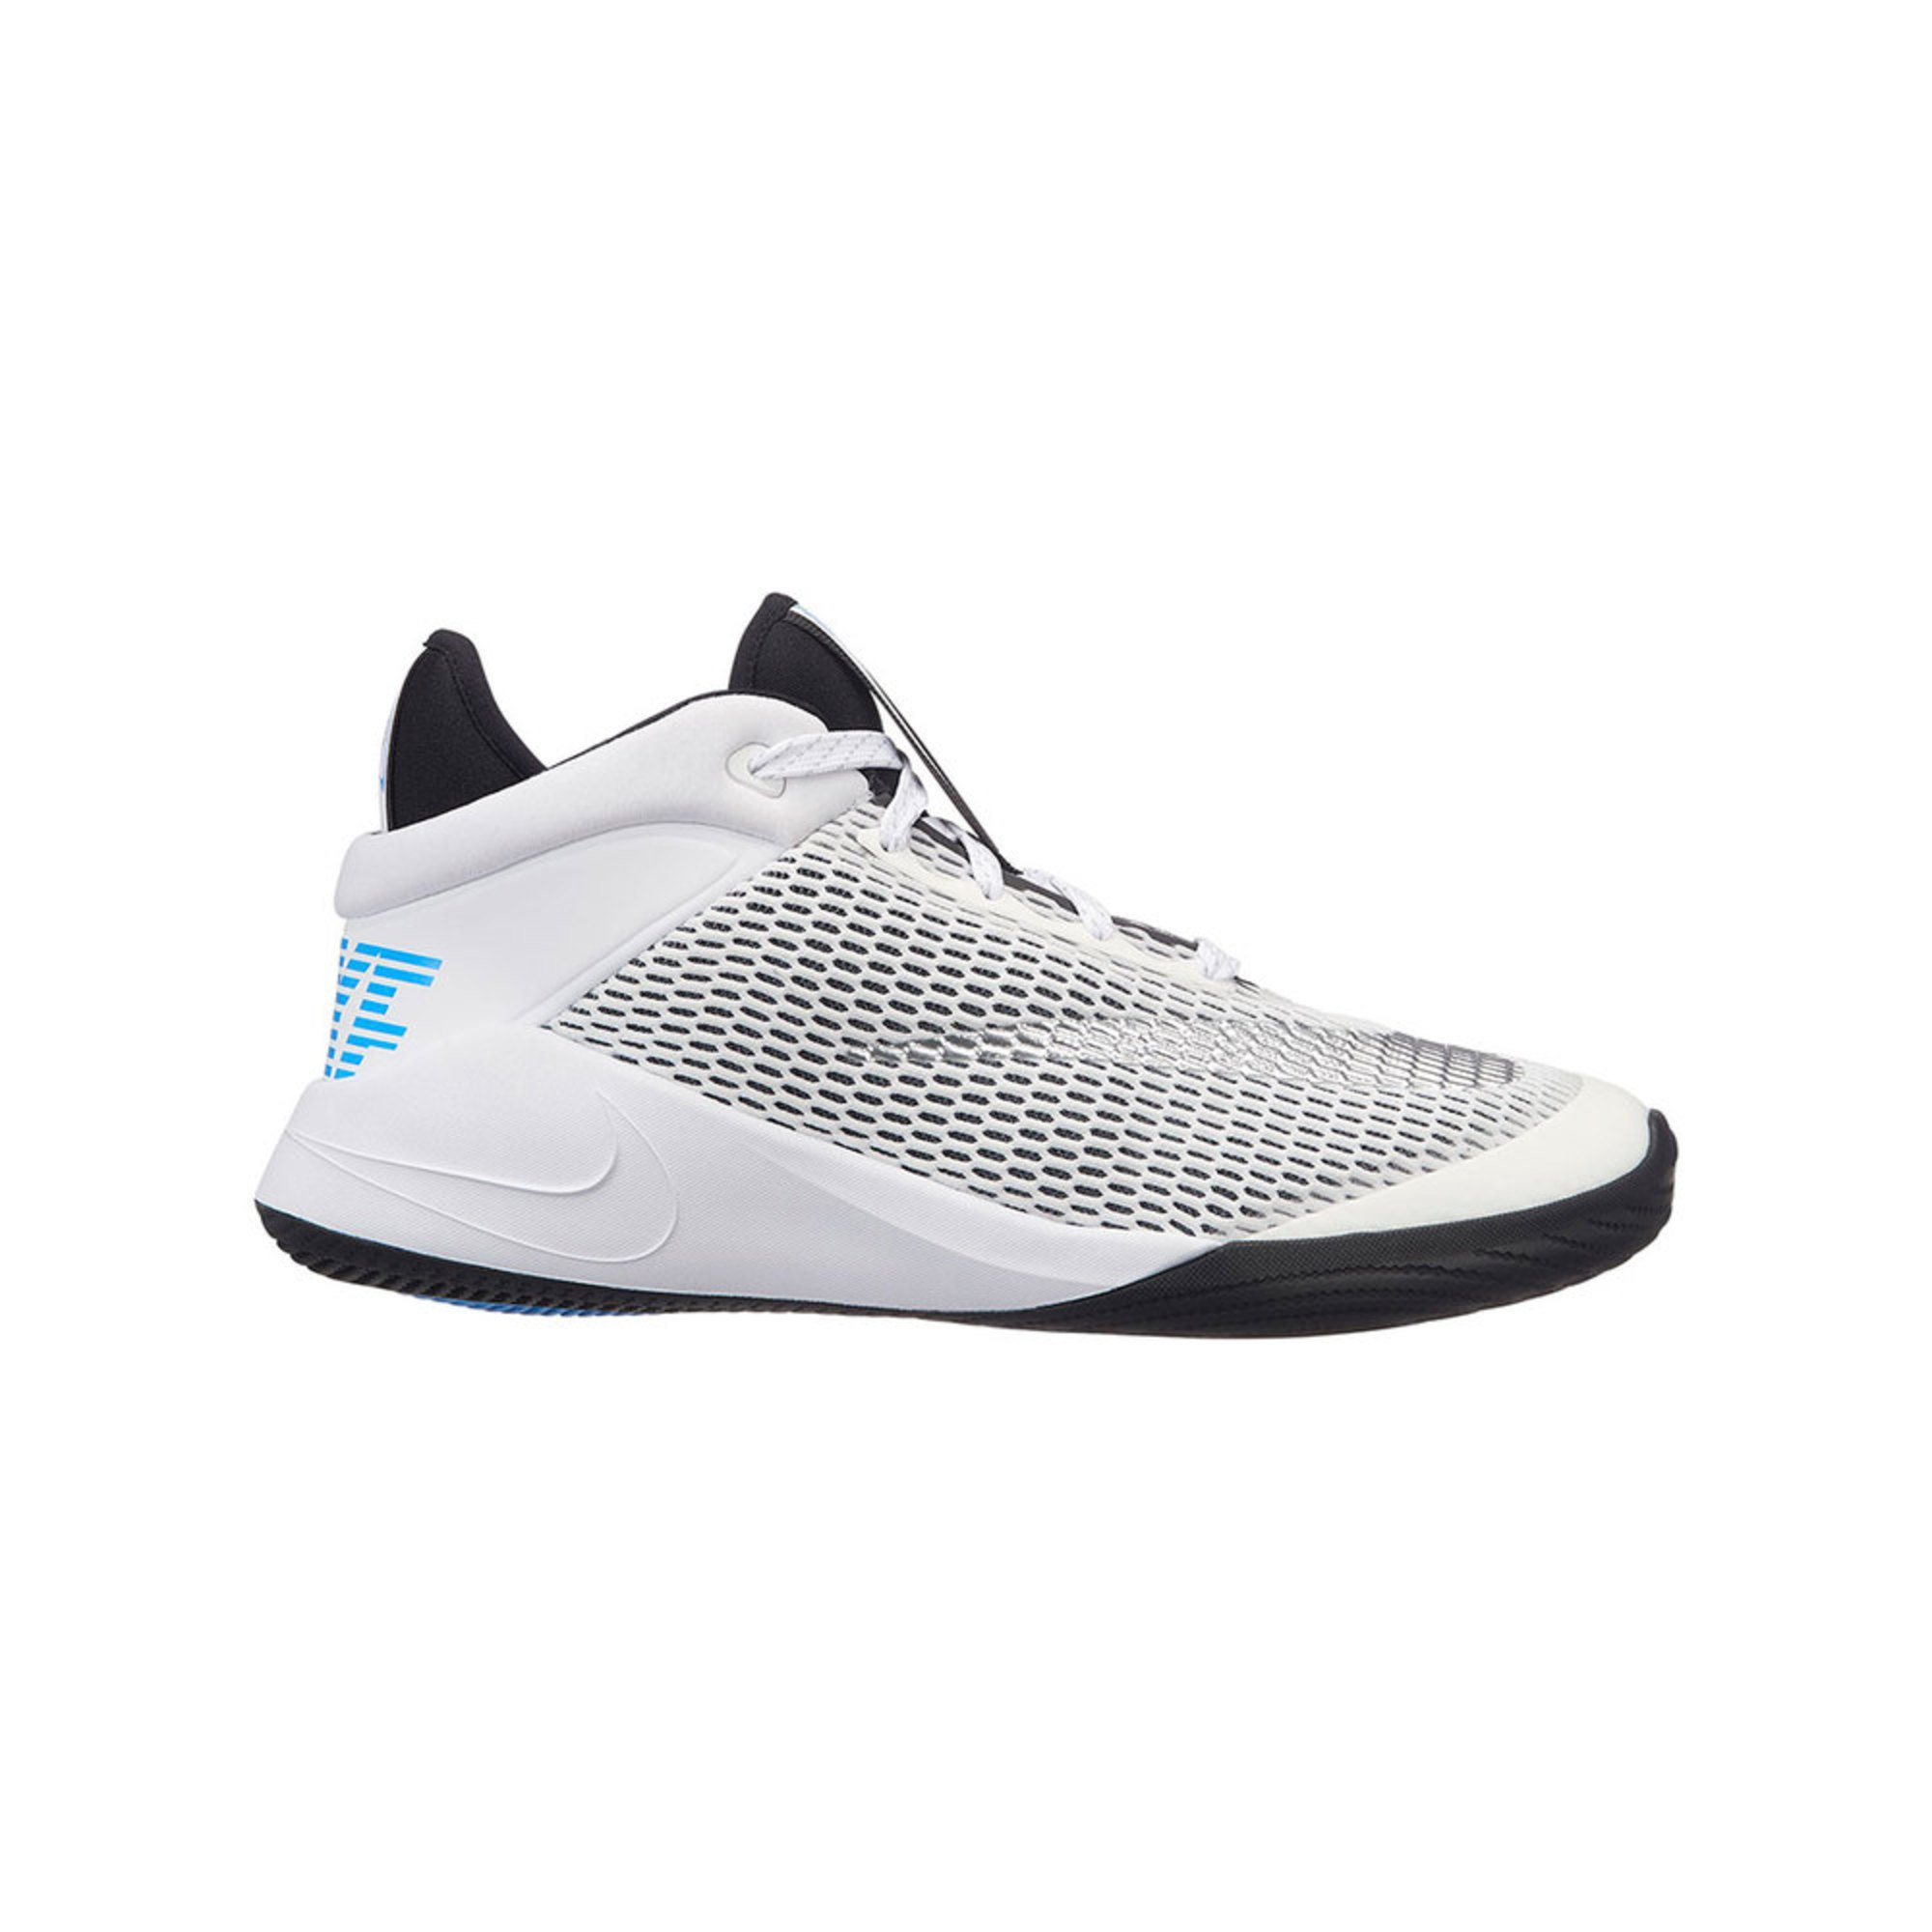 367923a7b616 Nike. Nike Boys Future Flight Basketball Shoe ...